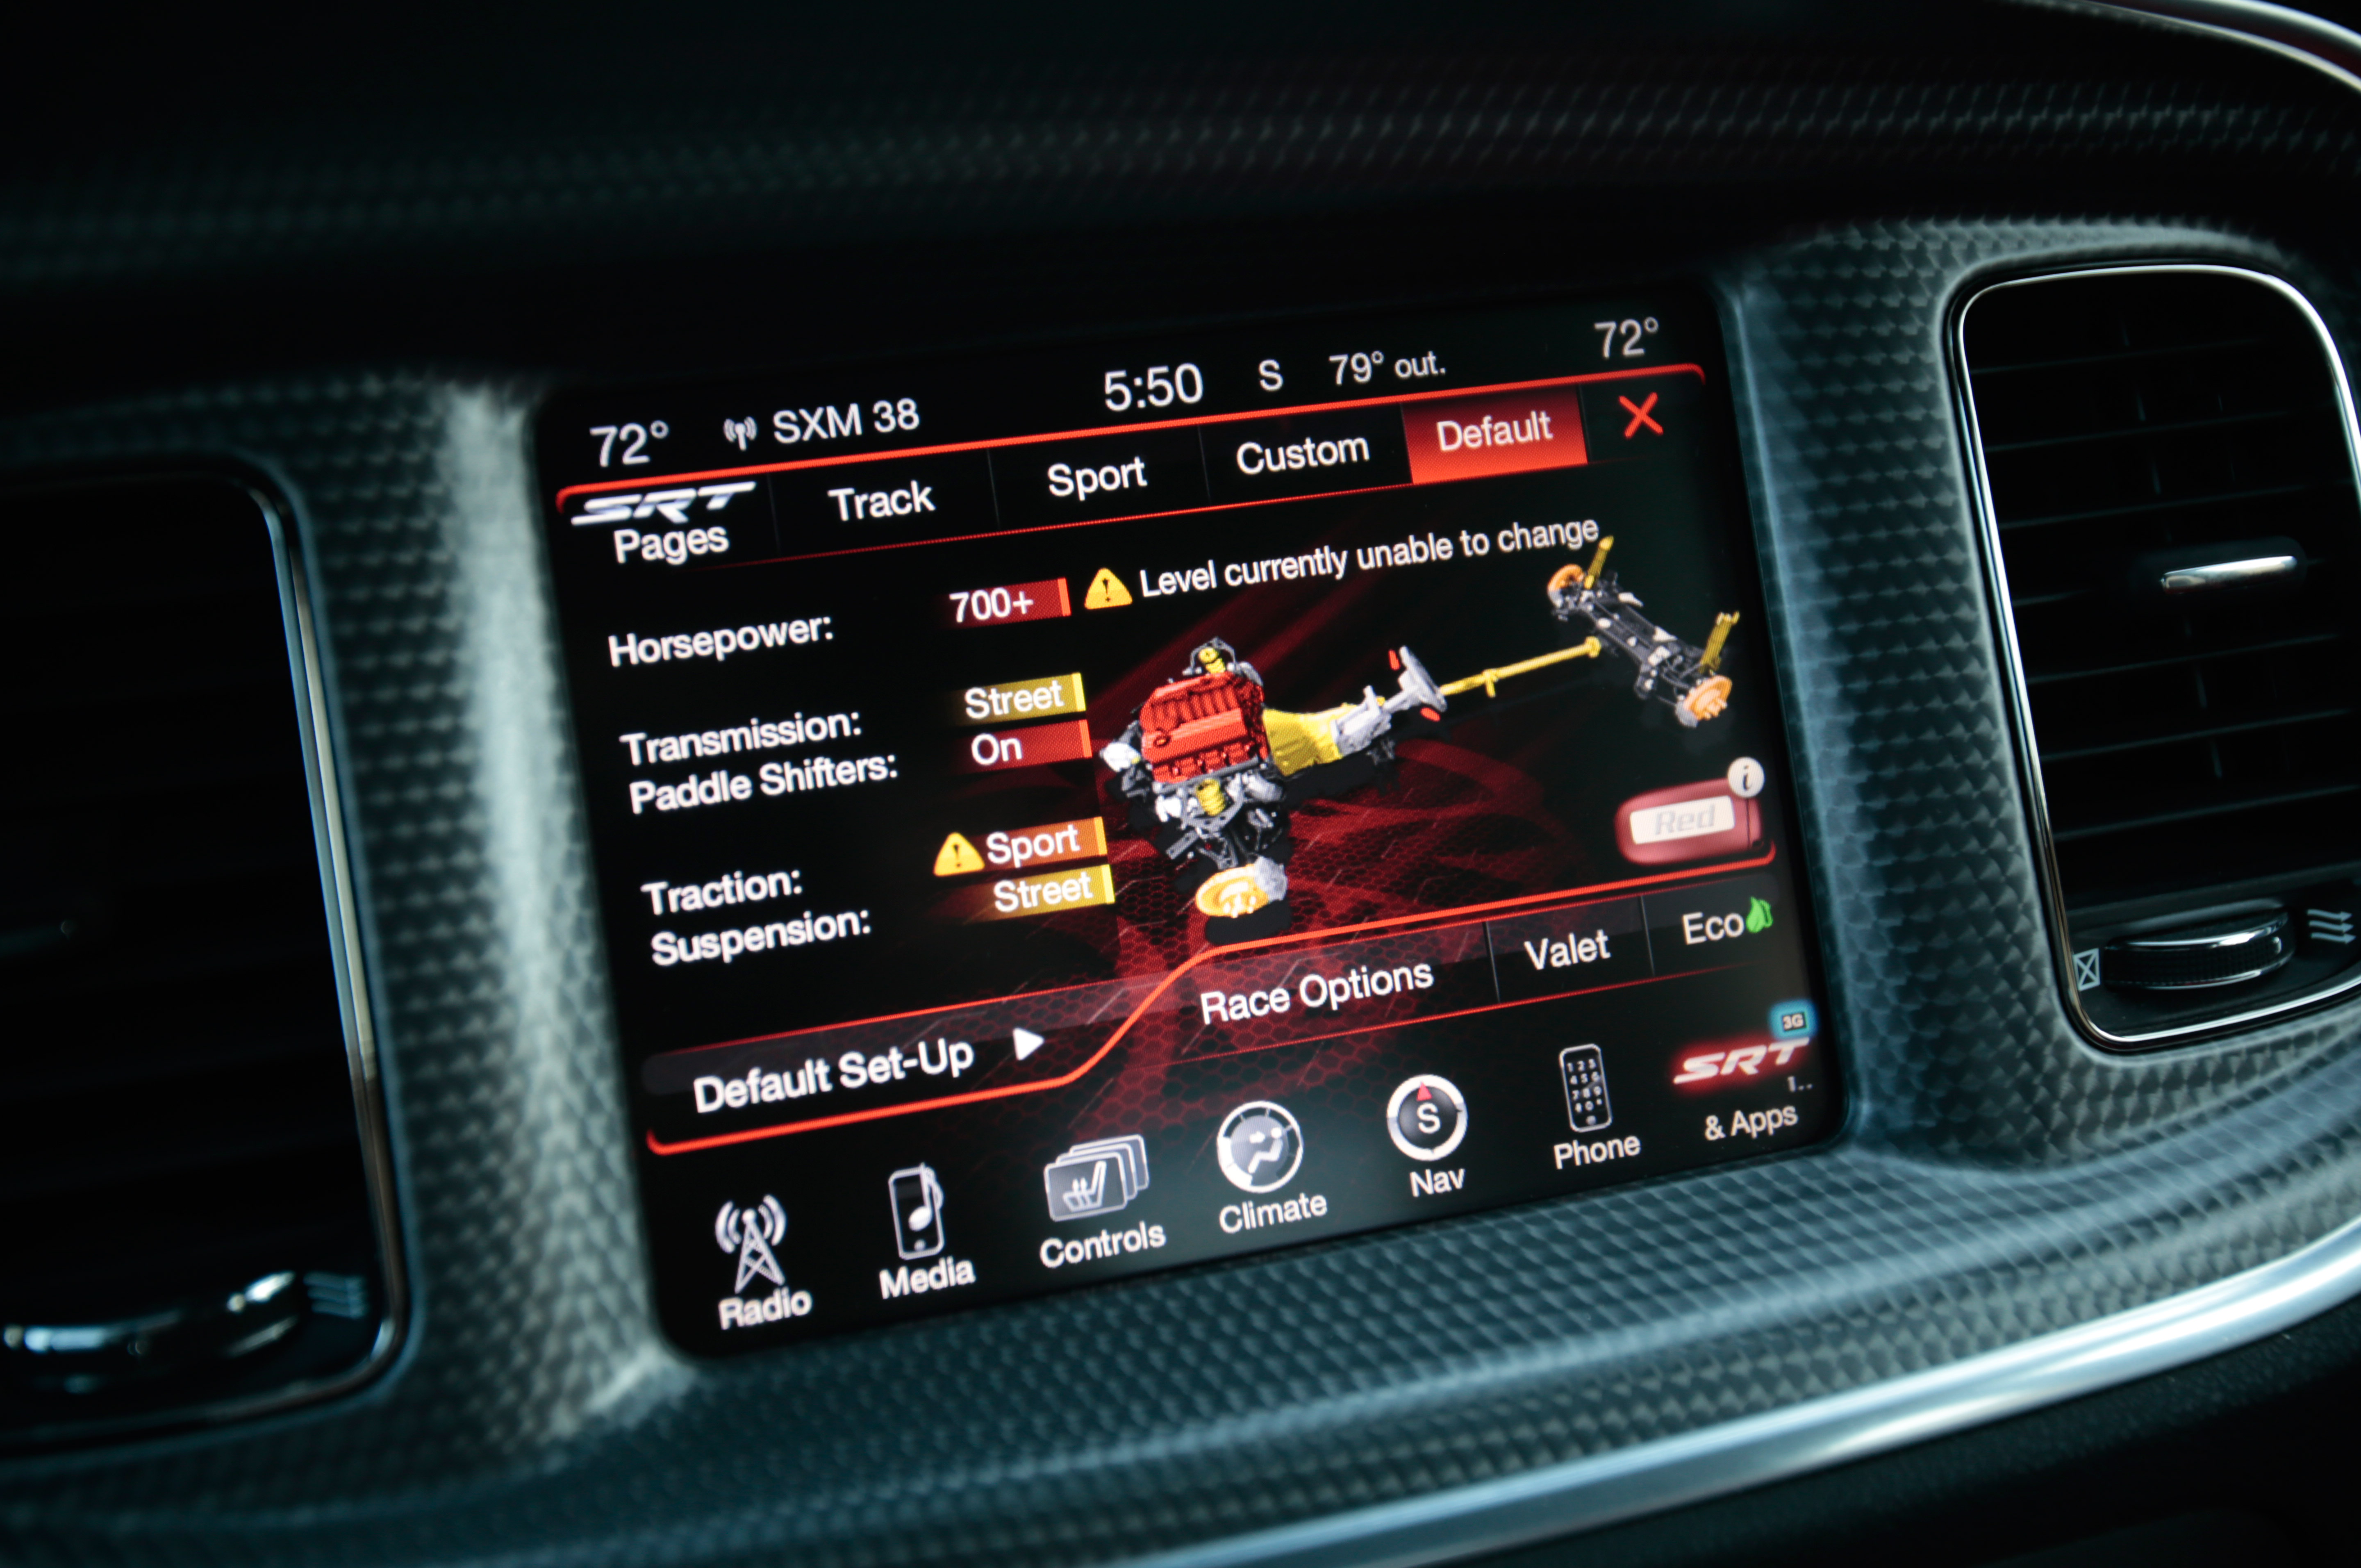 The Hellcat has an easy menu for adjusting settings, and once you program in your preferences, you can switch over from the default with a quick double-press of the SRT button. We found our street preferences also worked well on the track.